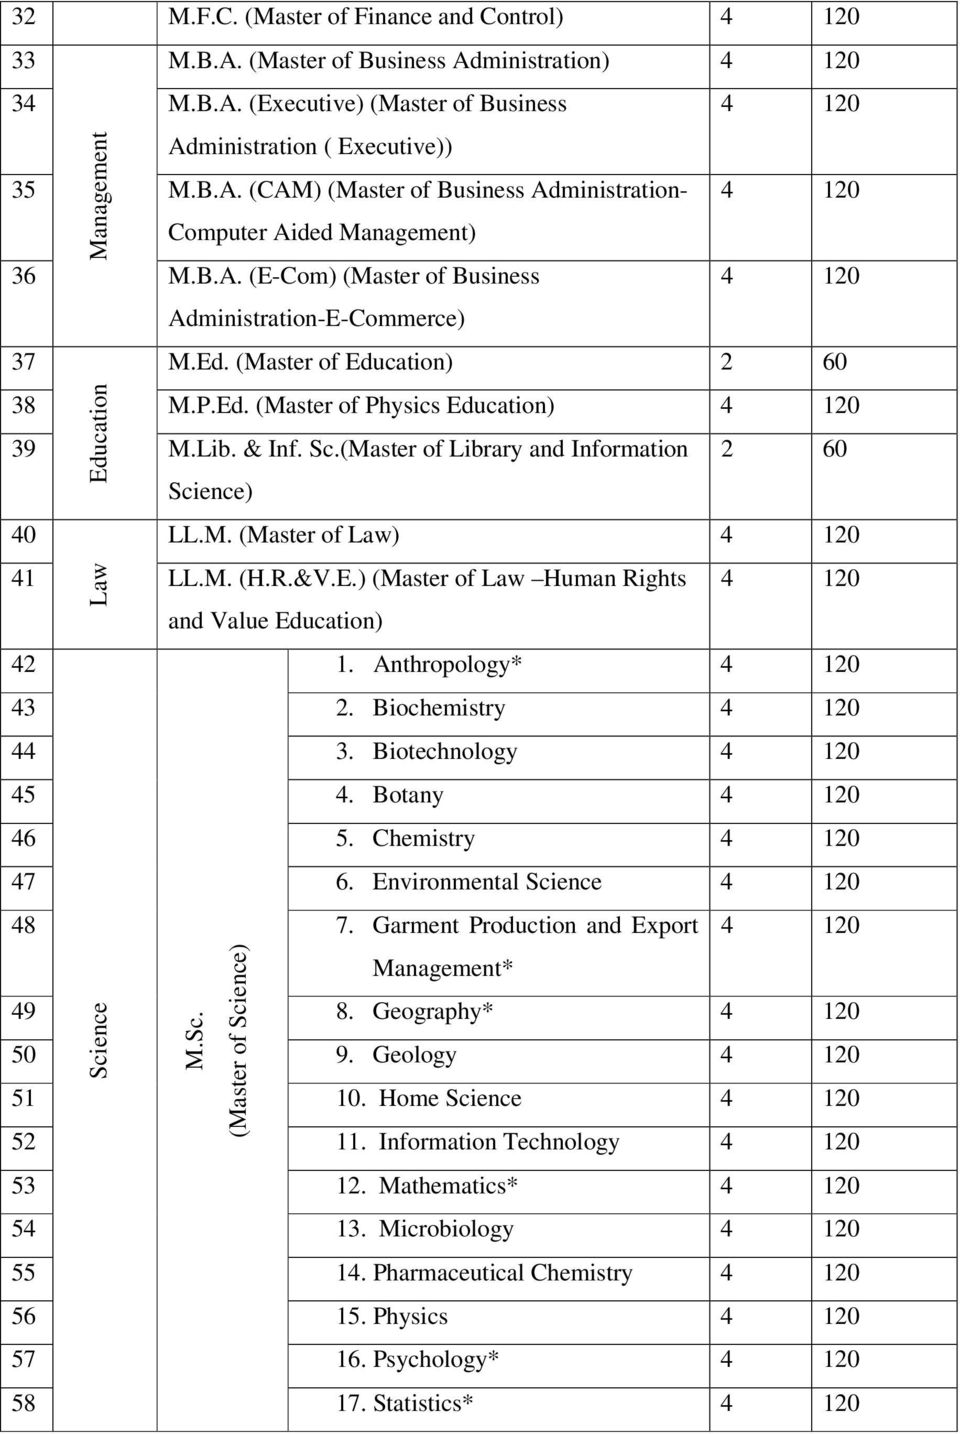 (Master of Library and Information 40 Law 2 60 Science) LL.M. (Master of Law) 4 120 41 LL.M. (H.R.&V.E.) (Master of Law Human Rights 42 Science 4 120 and Value Education) 1. Anthropology* 4 120 43 2.